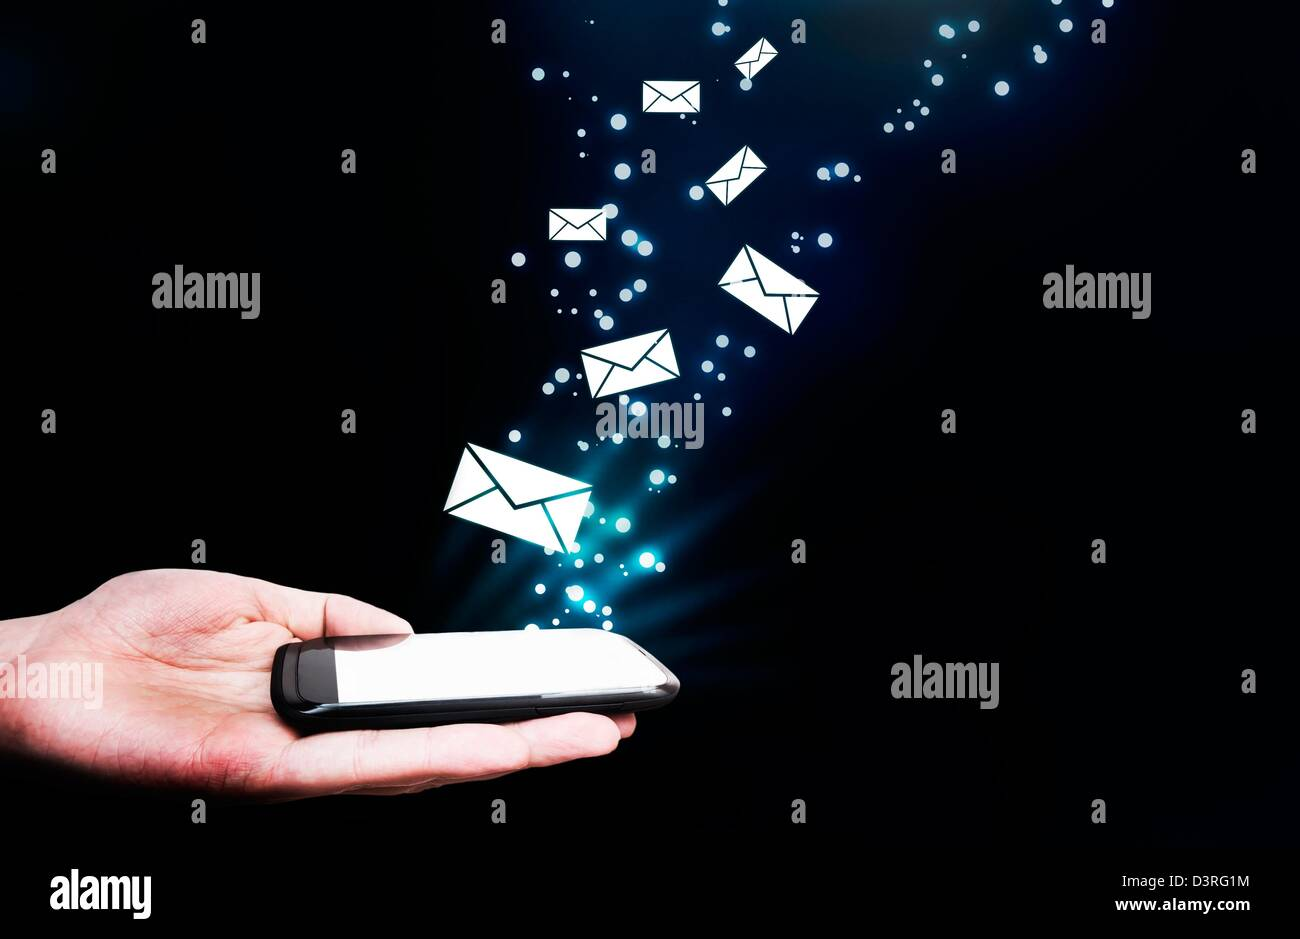 Abstract, touching mobile phone, flying envelopes  Message